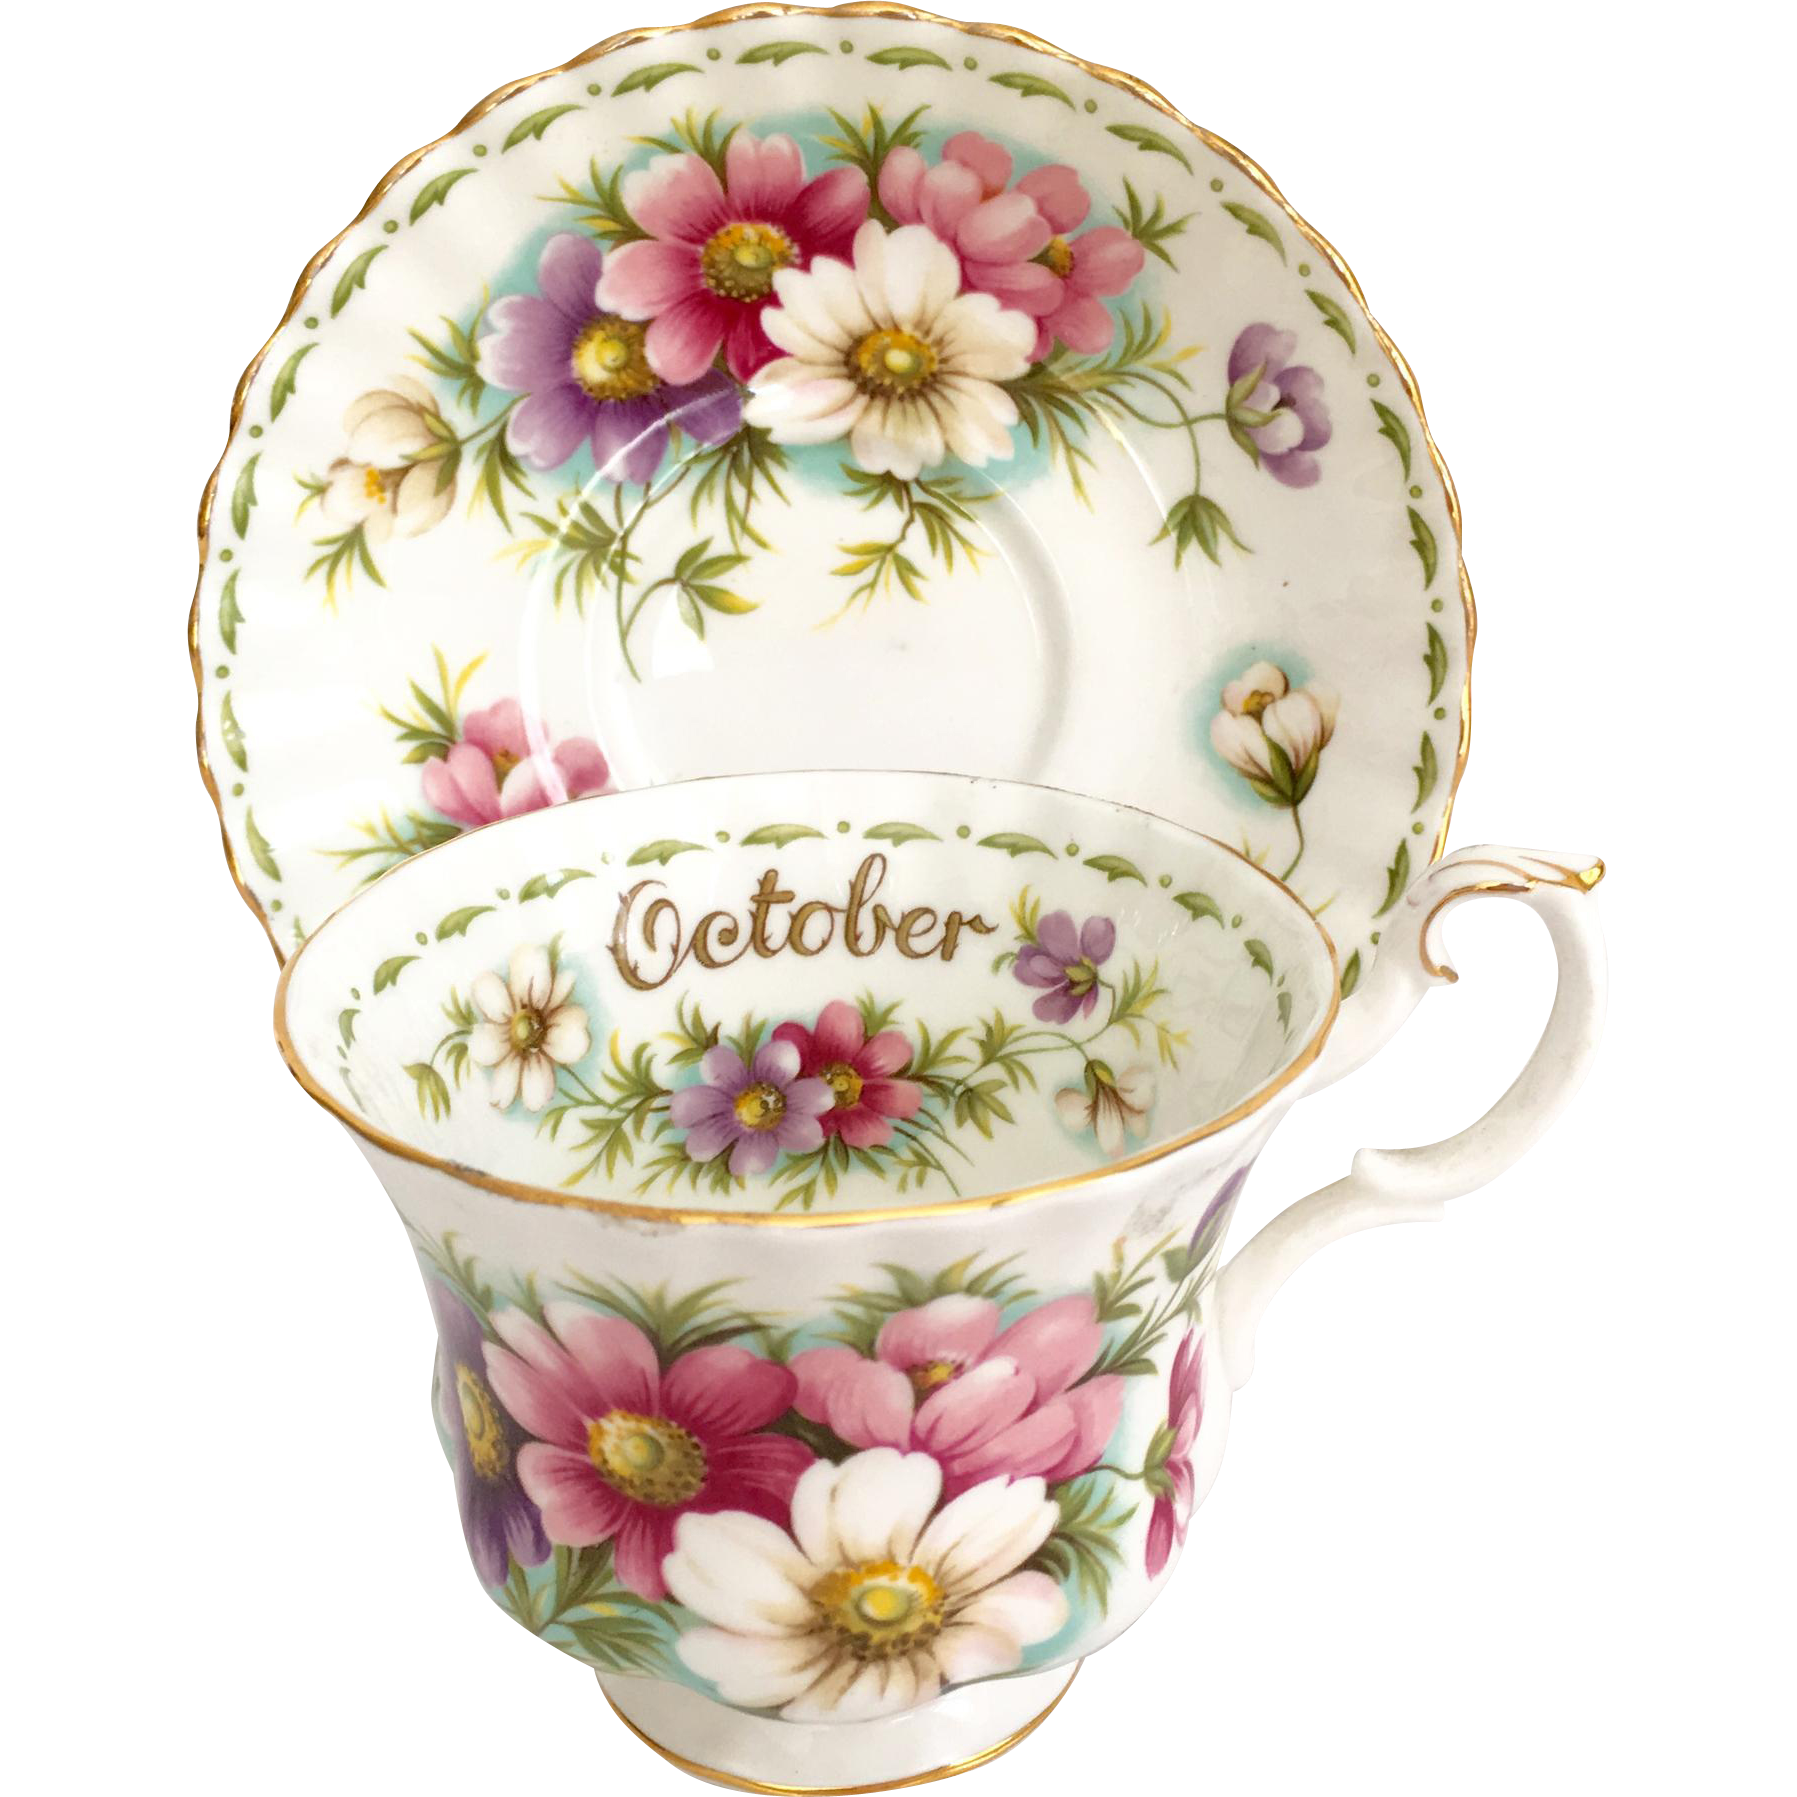 Royal Albert October Flower of the Month Cosmos Cup and Saucer